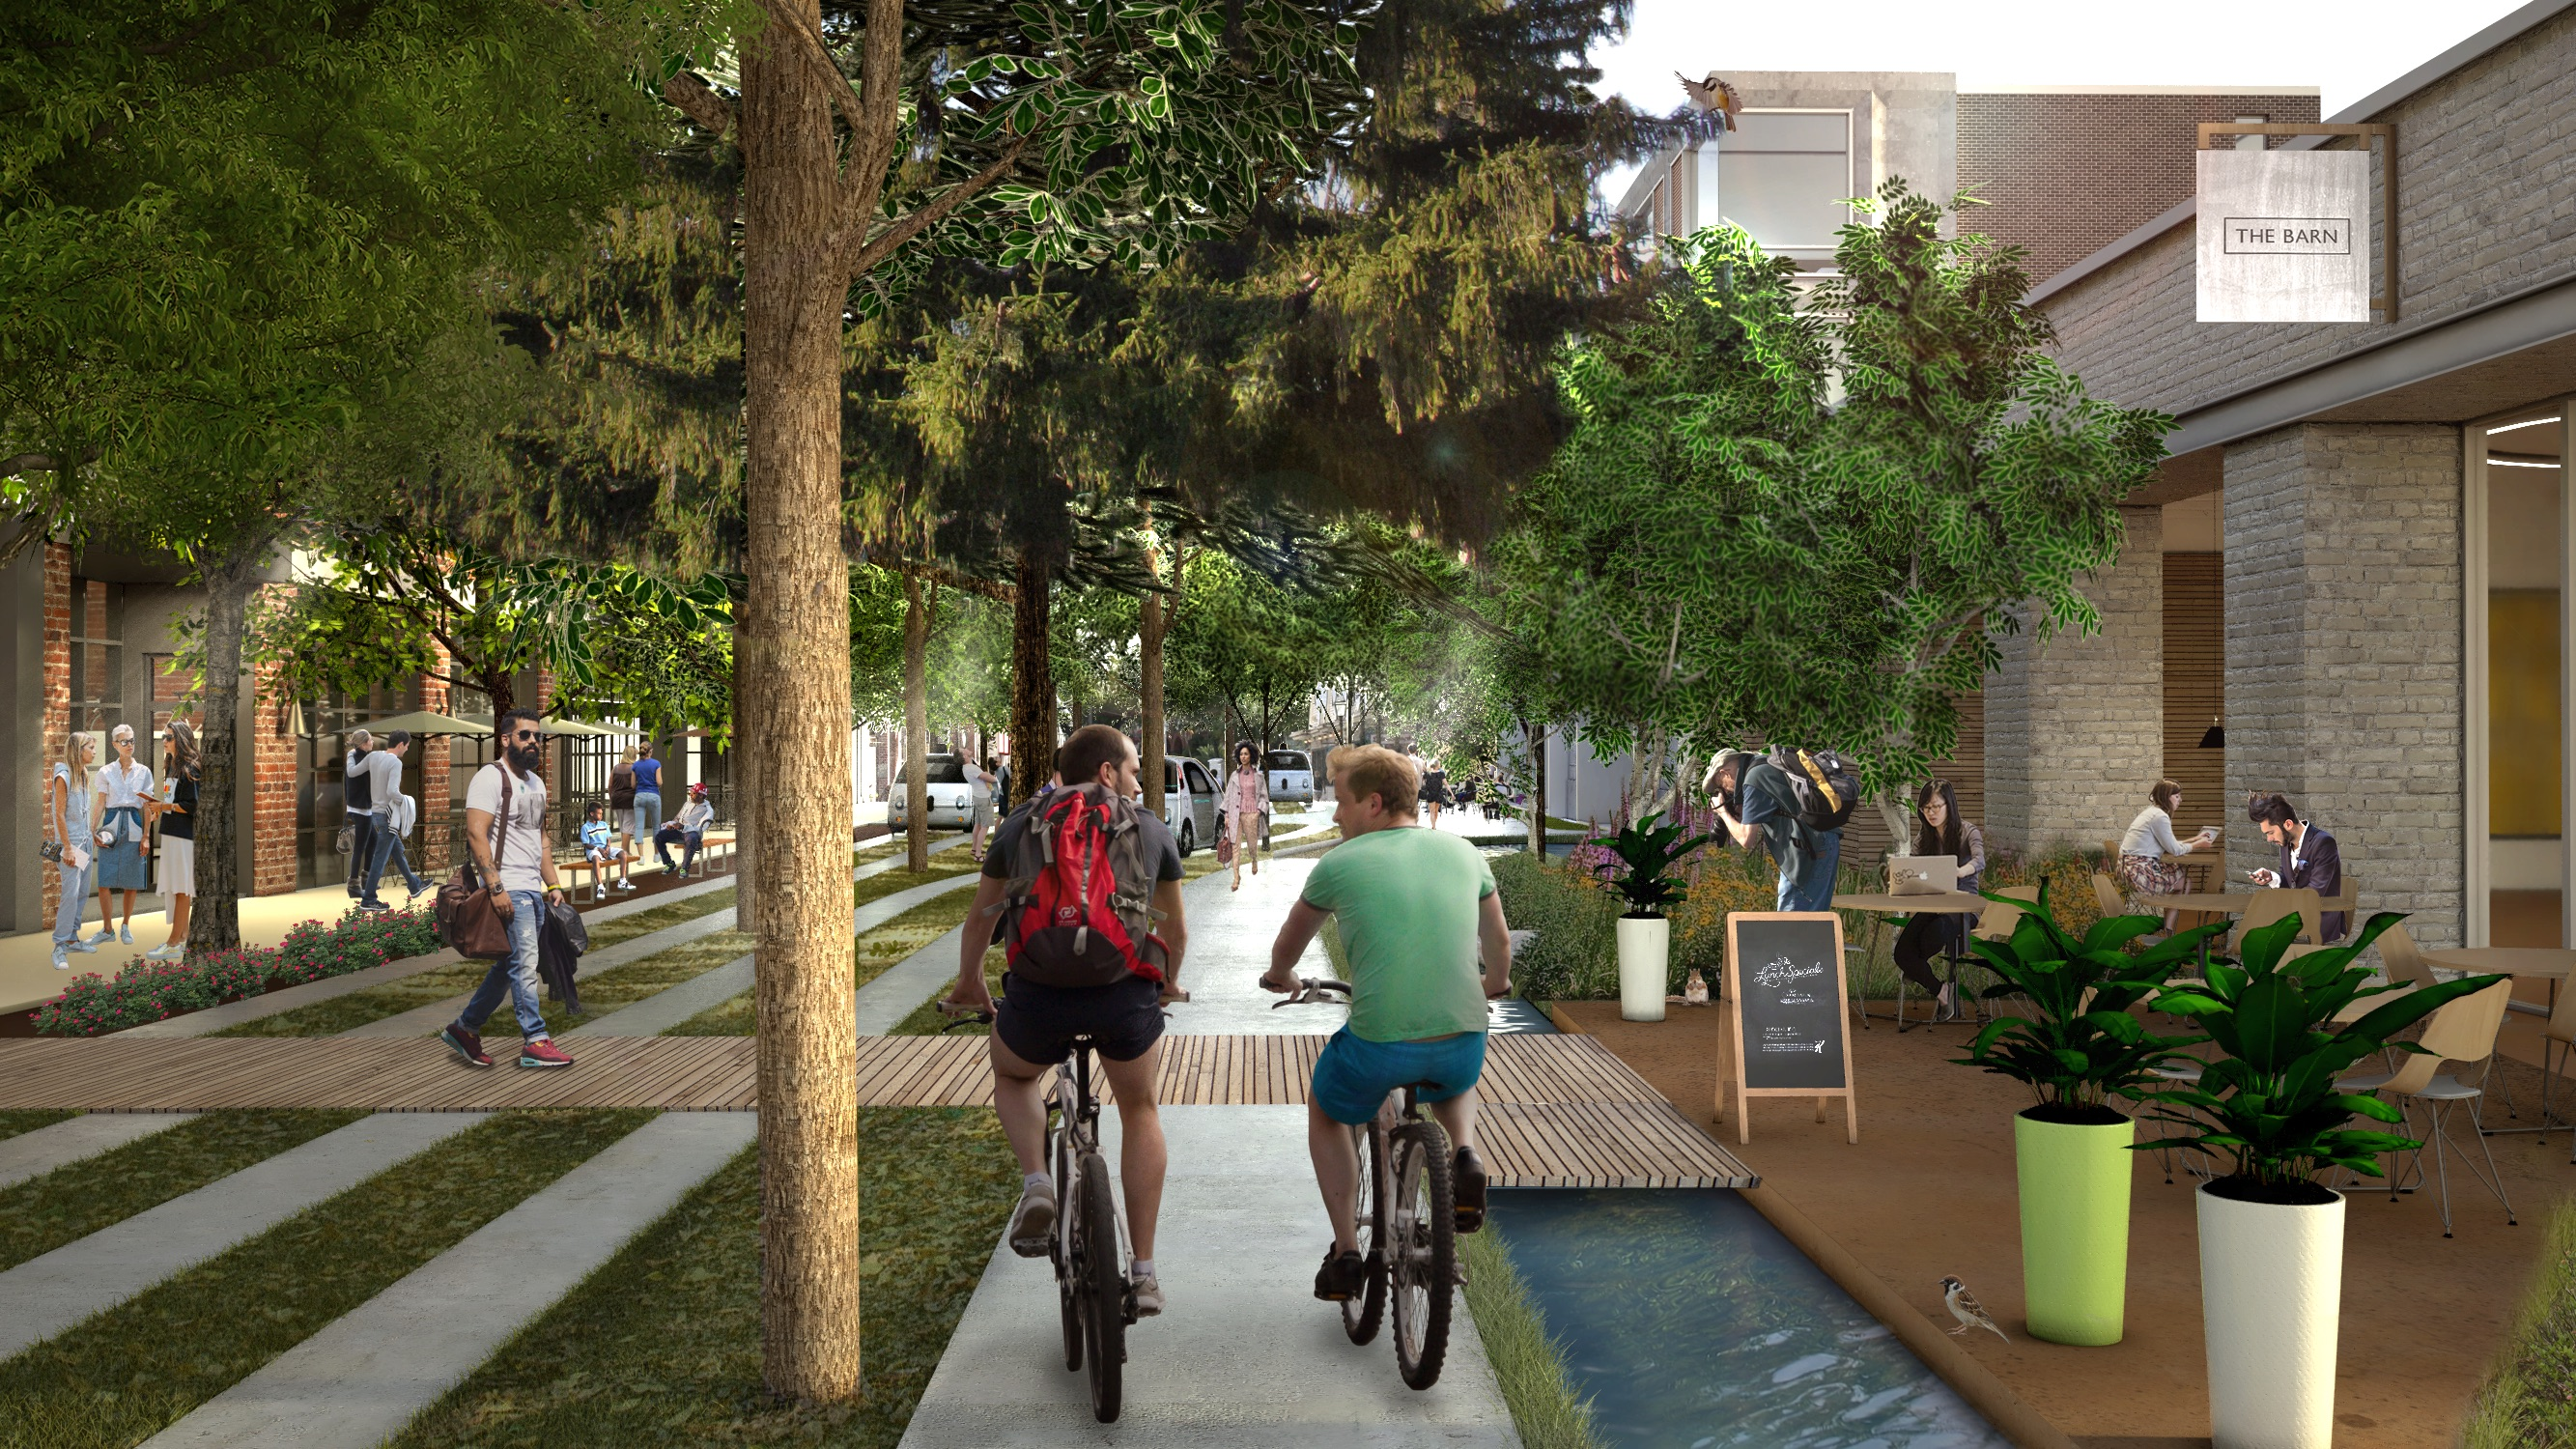 Thanks to autonomous vehicles, we could have these utopian, tree-filled streets